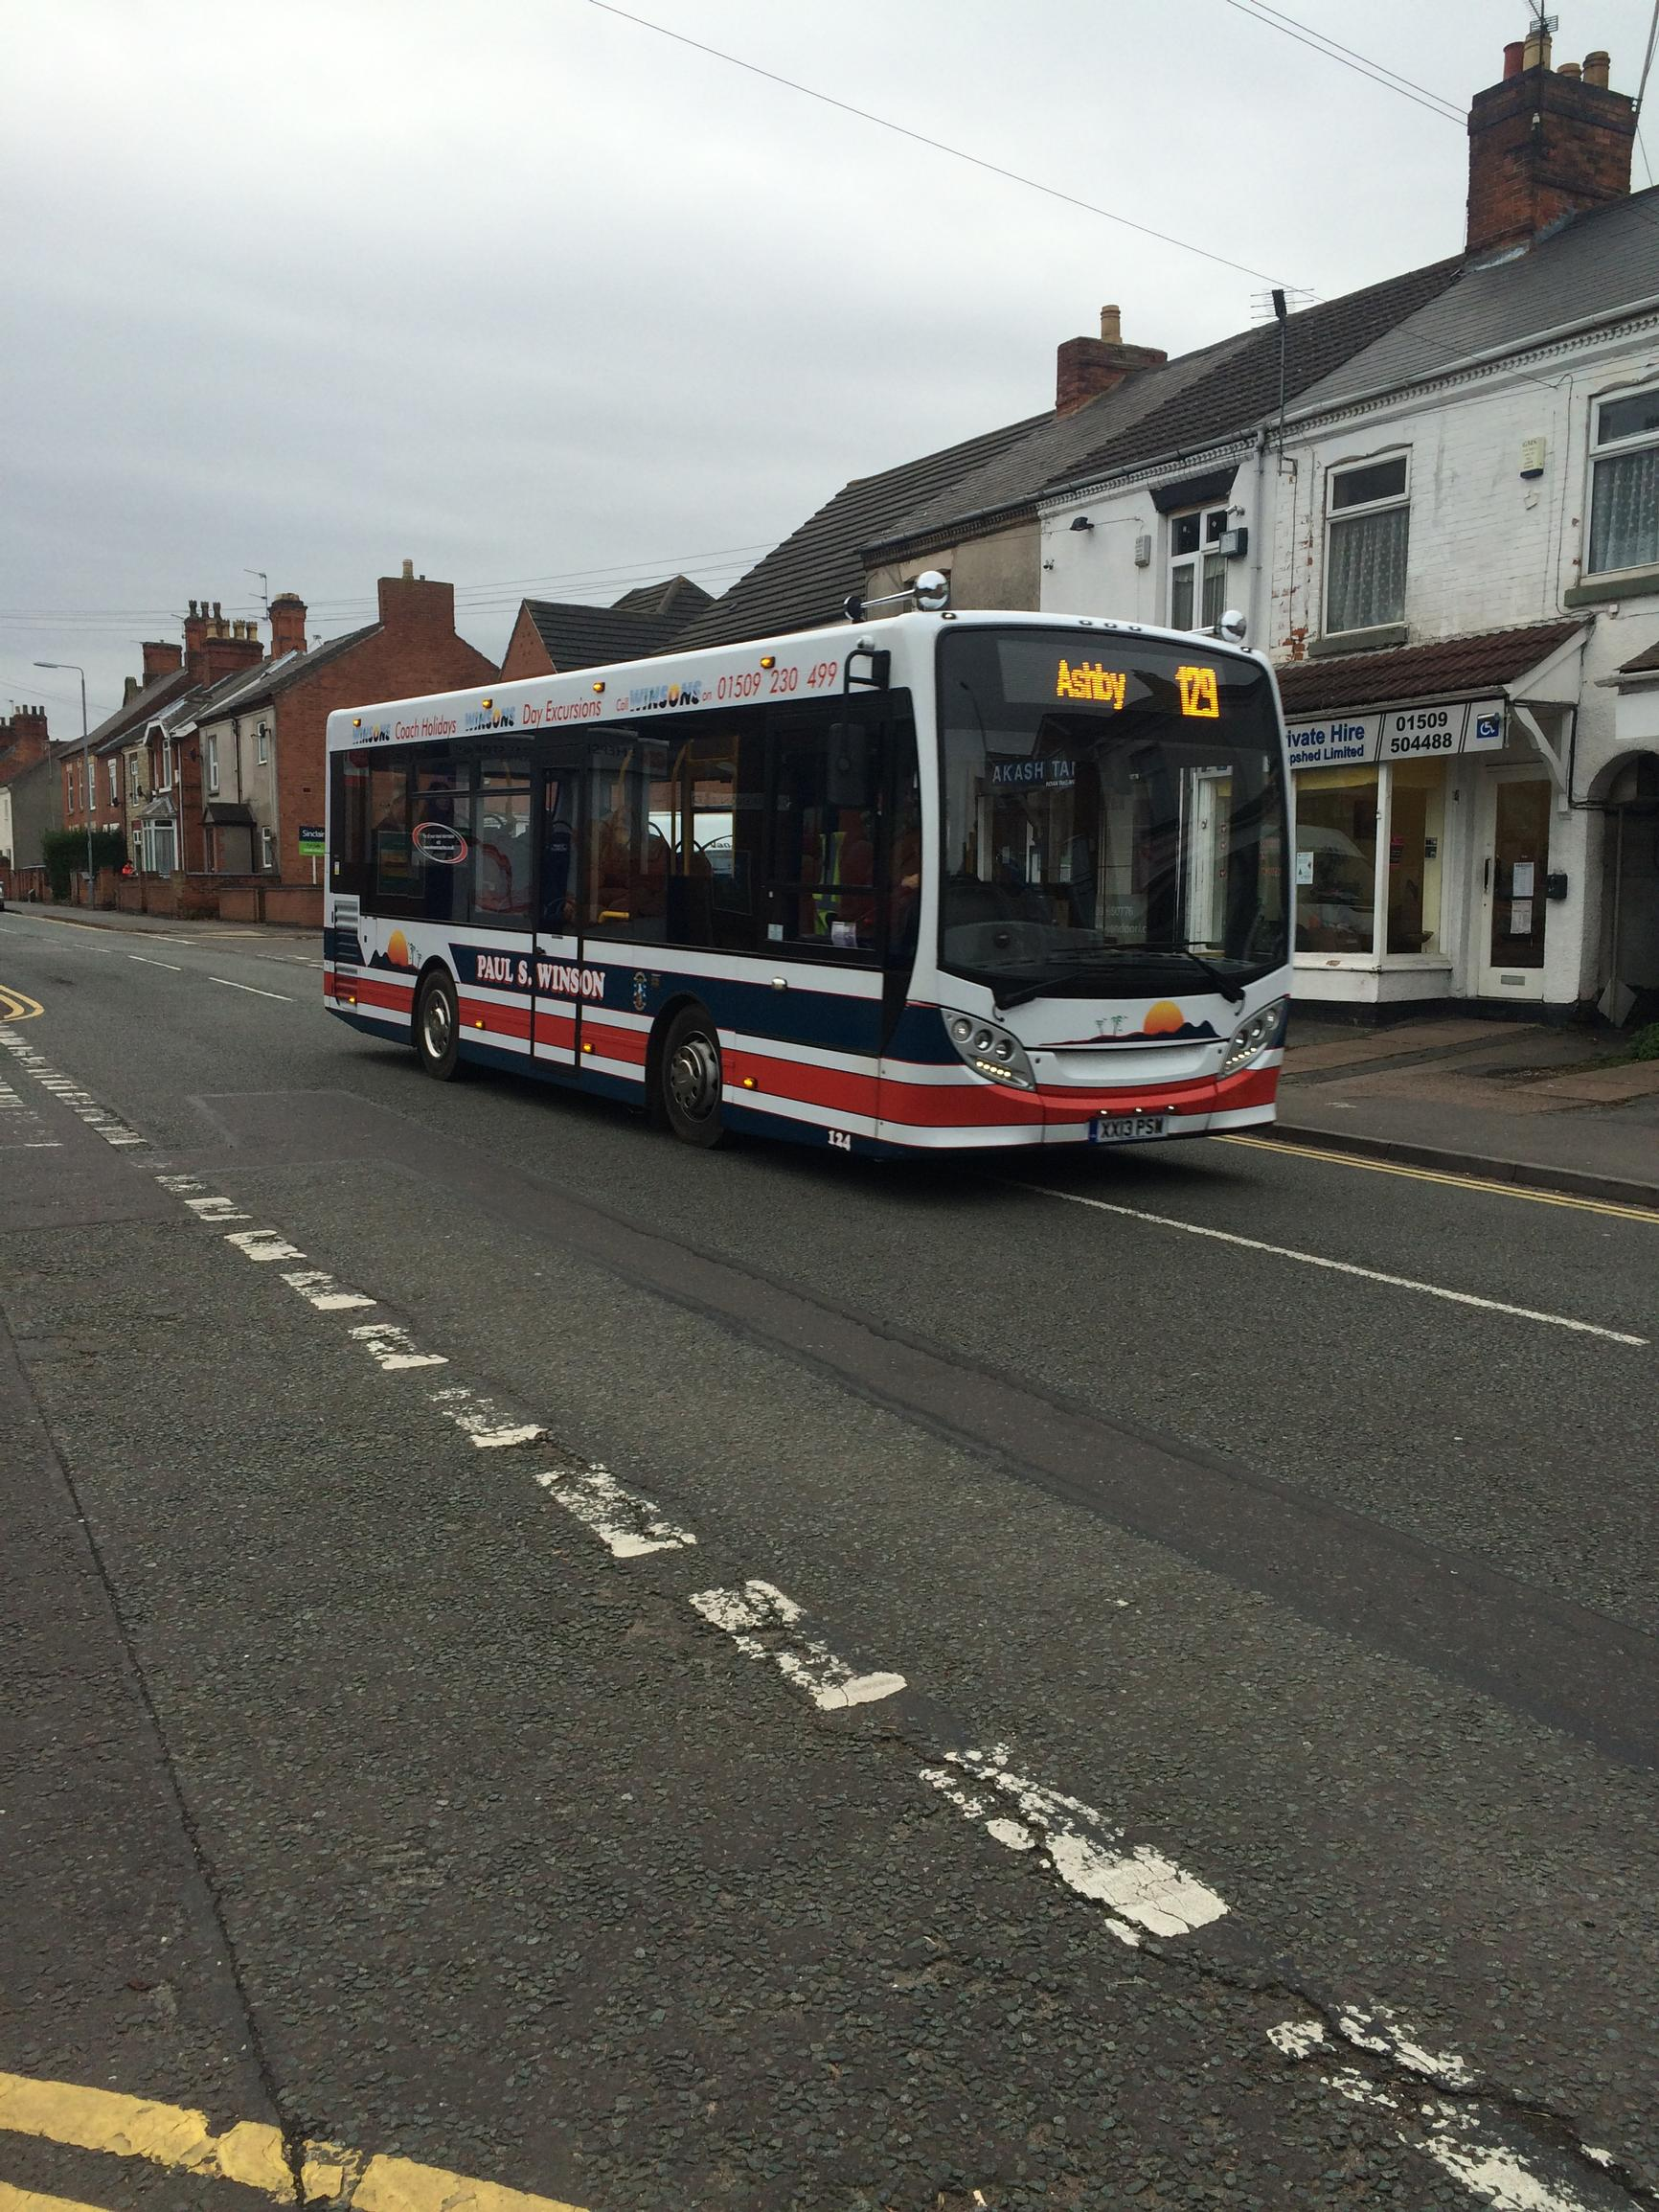 The 129 subsidised bus service which runs between Loughborough and Ashby-de-la-Zouch in Leicestershire